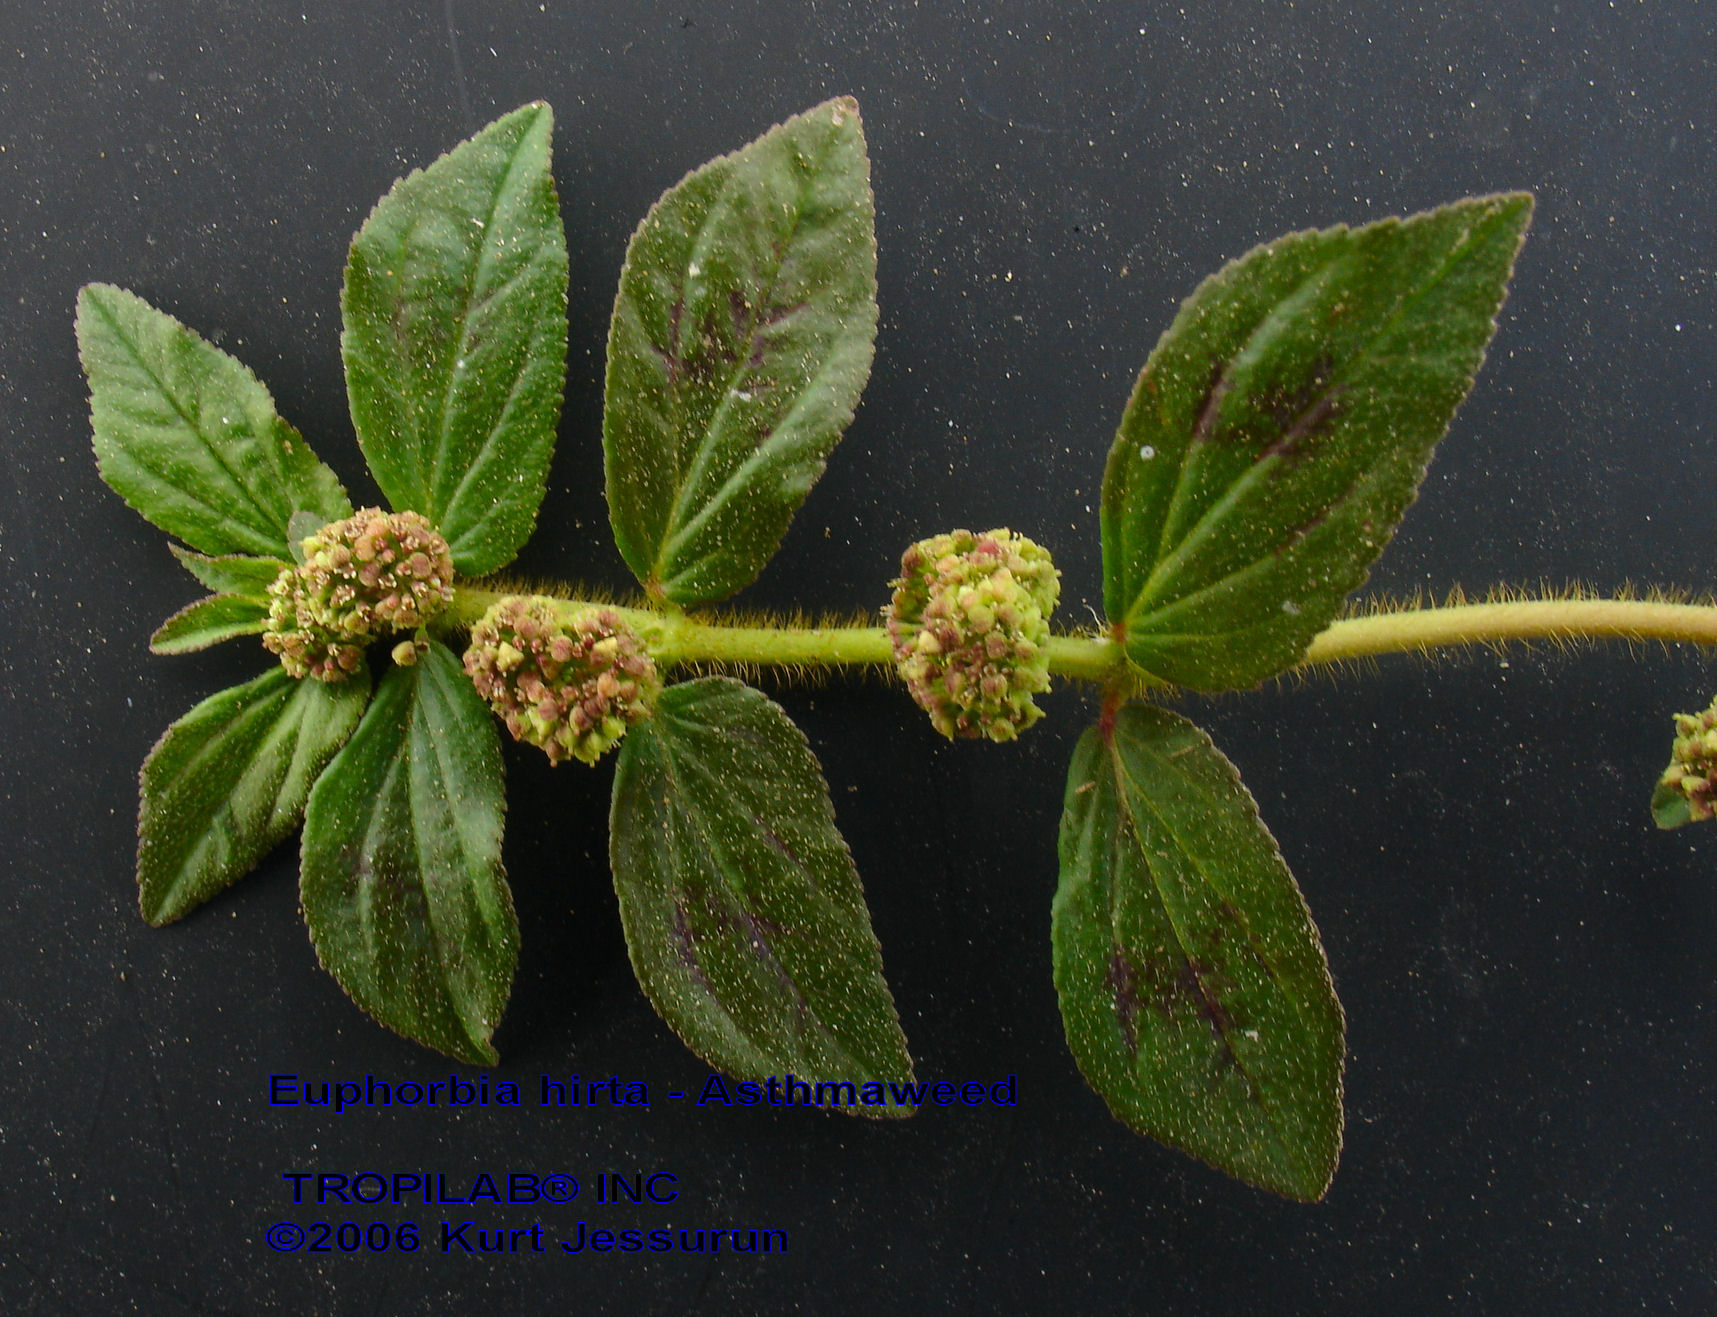 euphorbia hirta A common herb in suriname used against asthma, bronchitis, dengue.